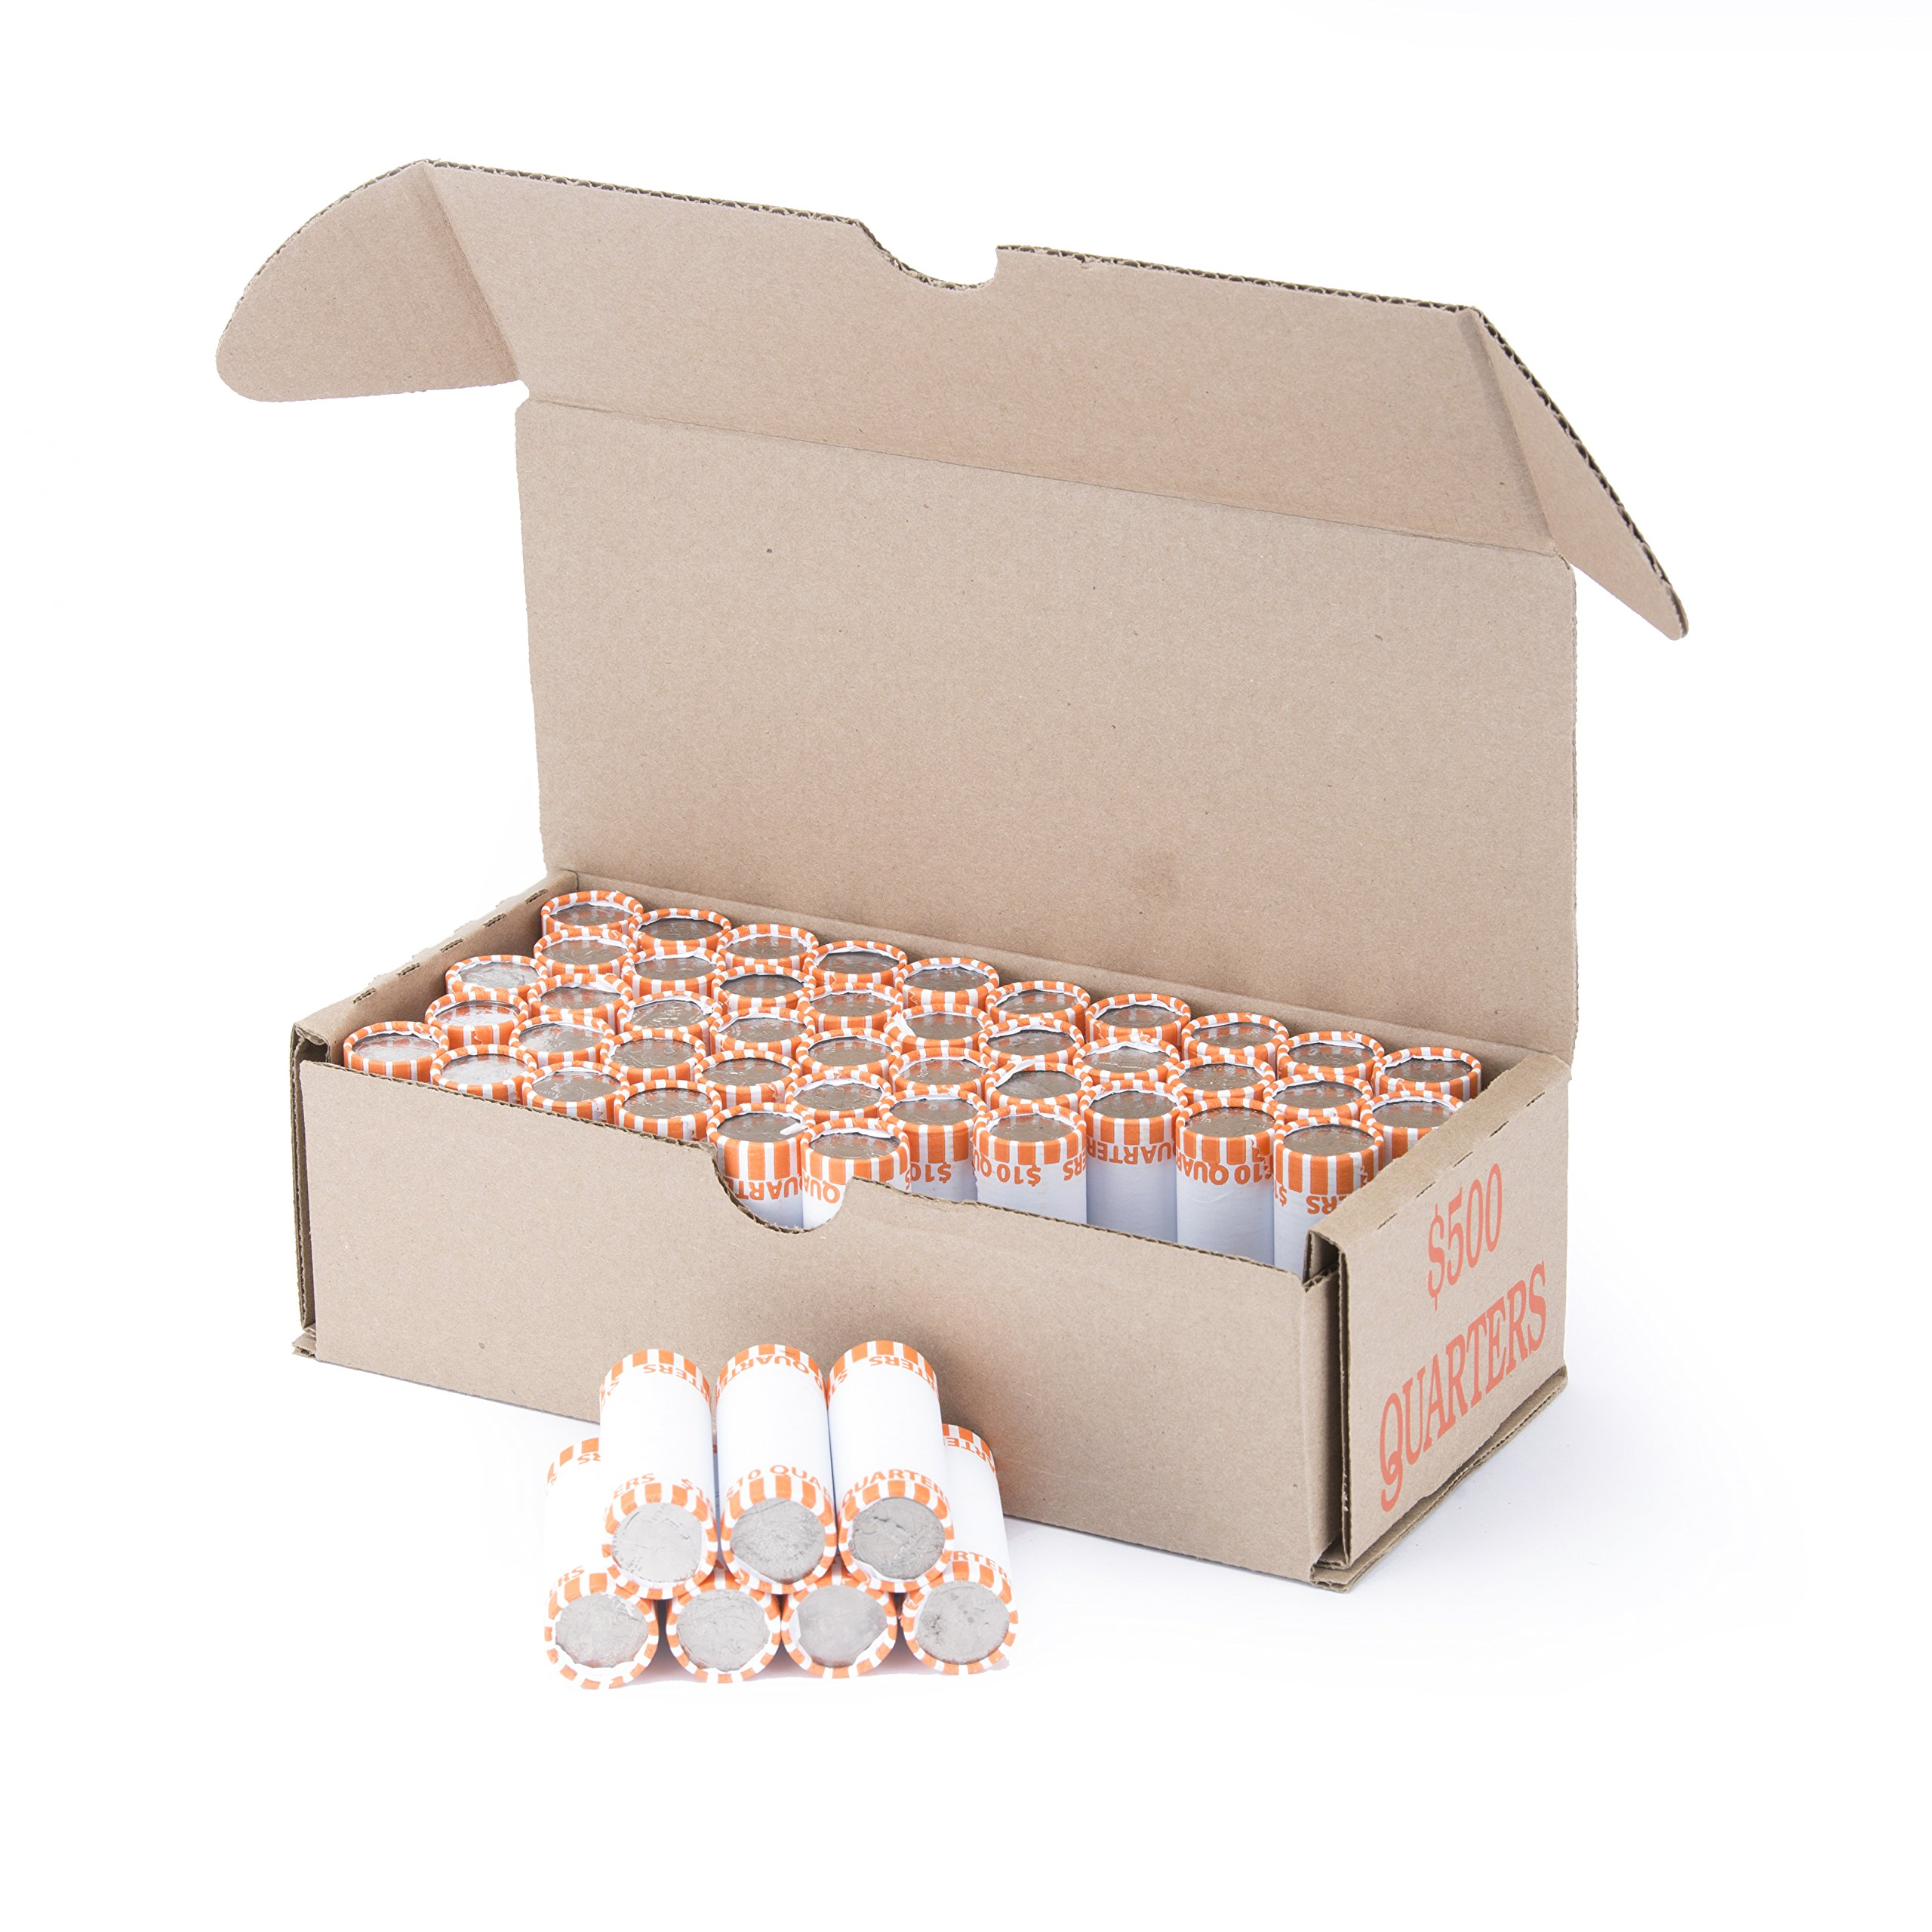 Quarter Storage Box Orange Holds 50 Wrapped Coin Rolls, 50 boxes